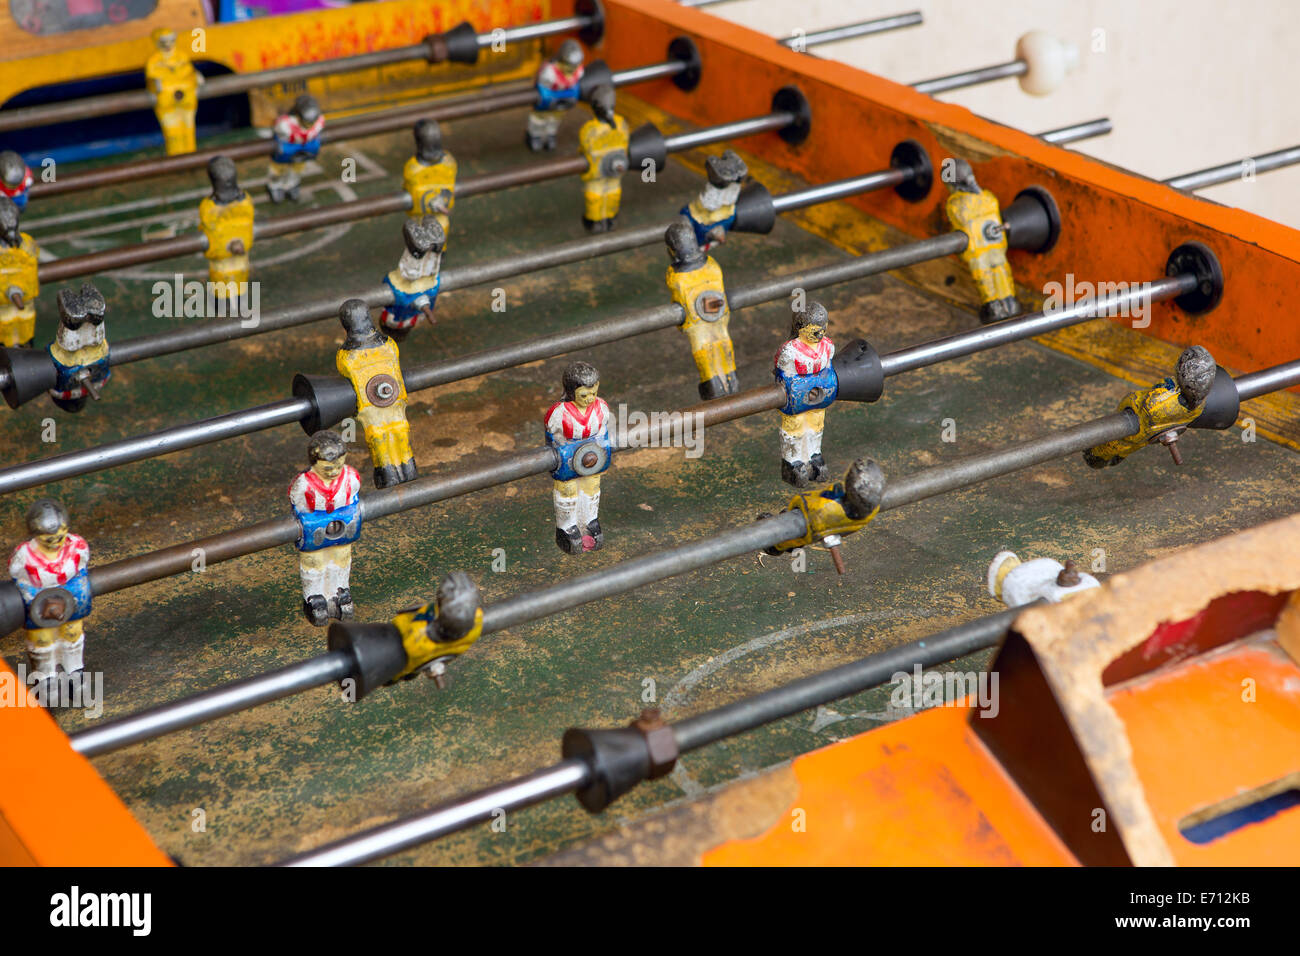 Old fussball table detail with colorful players - Stock Image